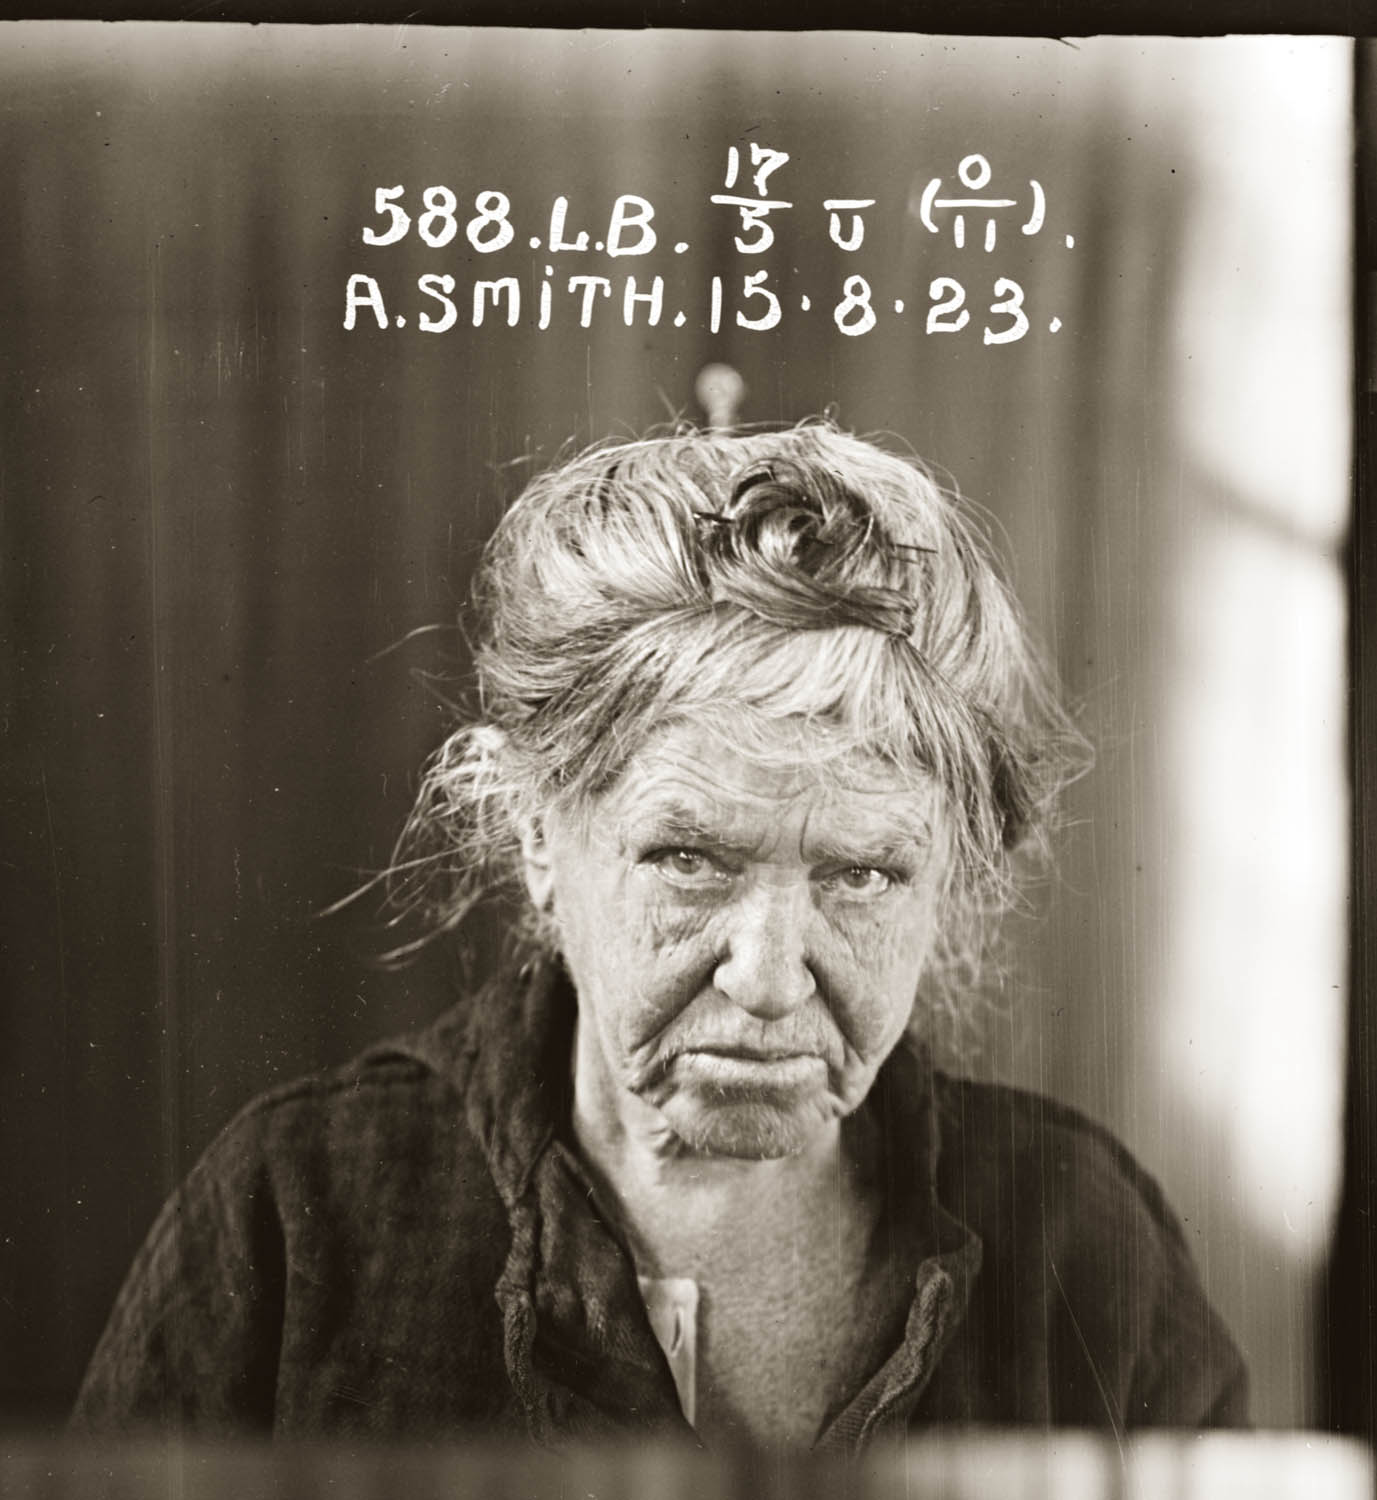 Mug Shots of Australian women prisoners 1920s